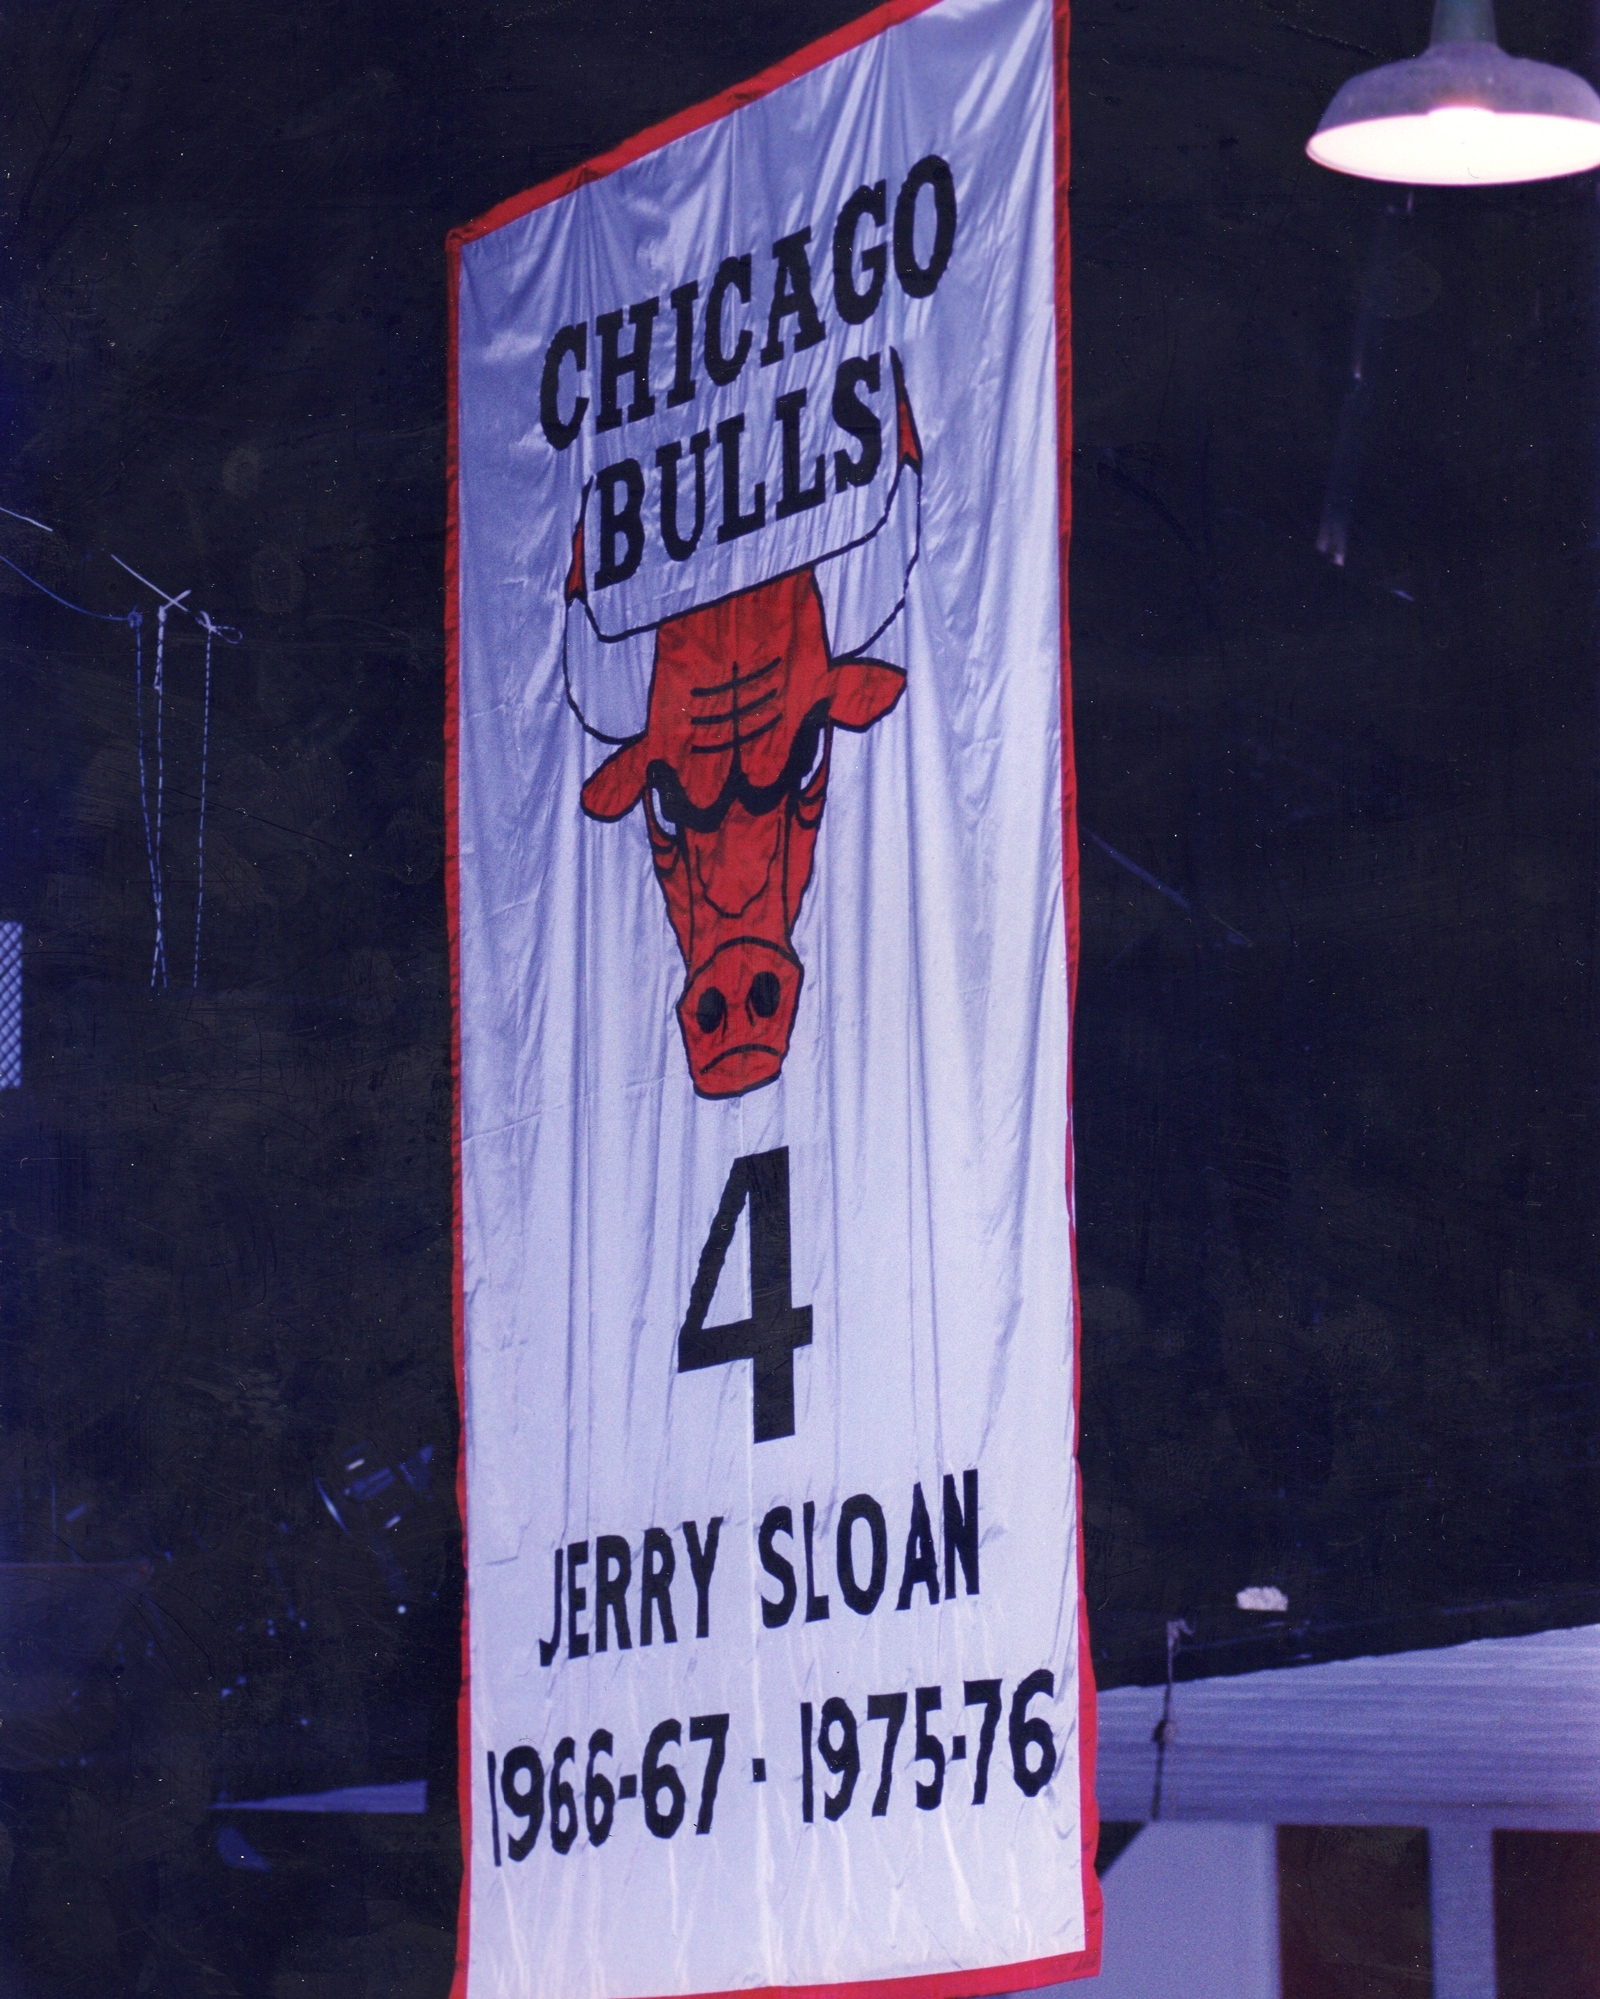 Jerry Sloan's No. 4 retired in the rafters at Chicago Stadium.